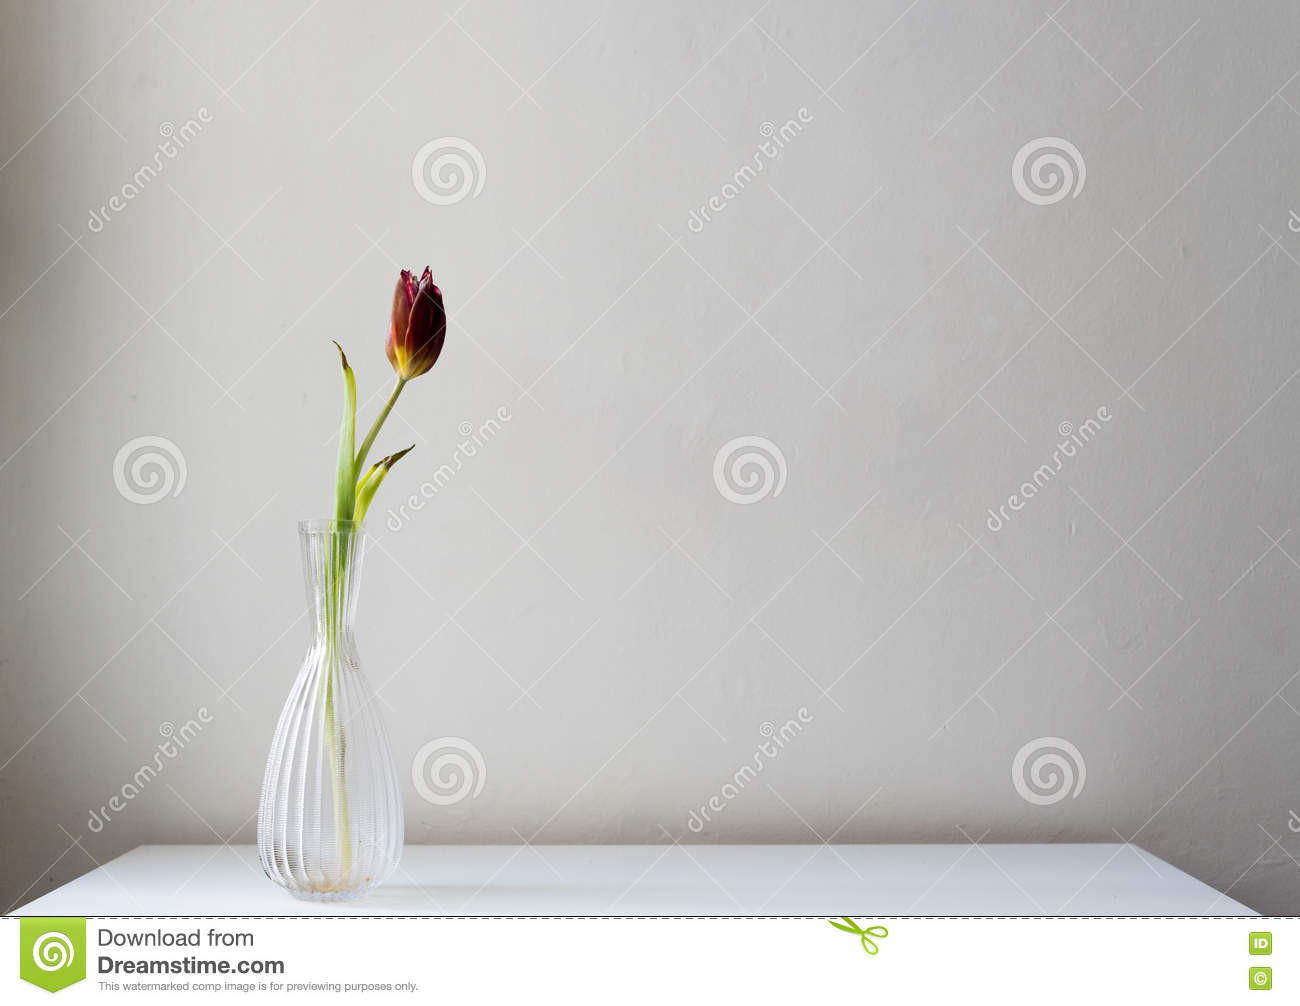 red cut glass vase of dying dark red tulip in glass vase stock image image of neutral inside download dying dark red tulip in glass vase stock image image of neutral wall